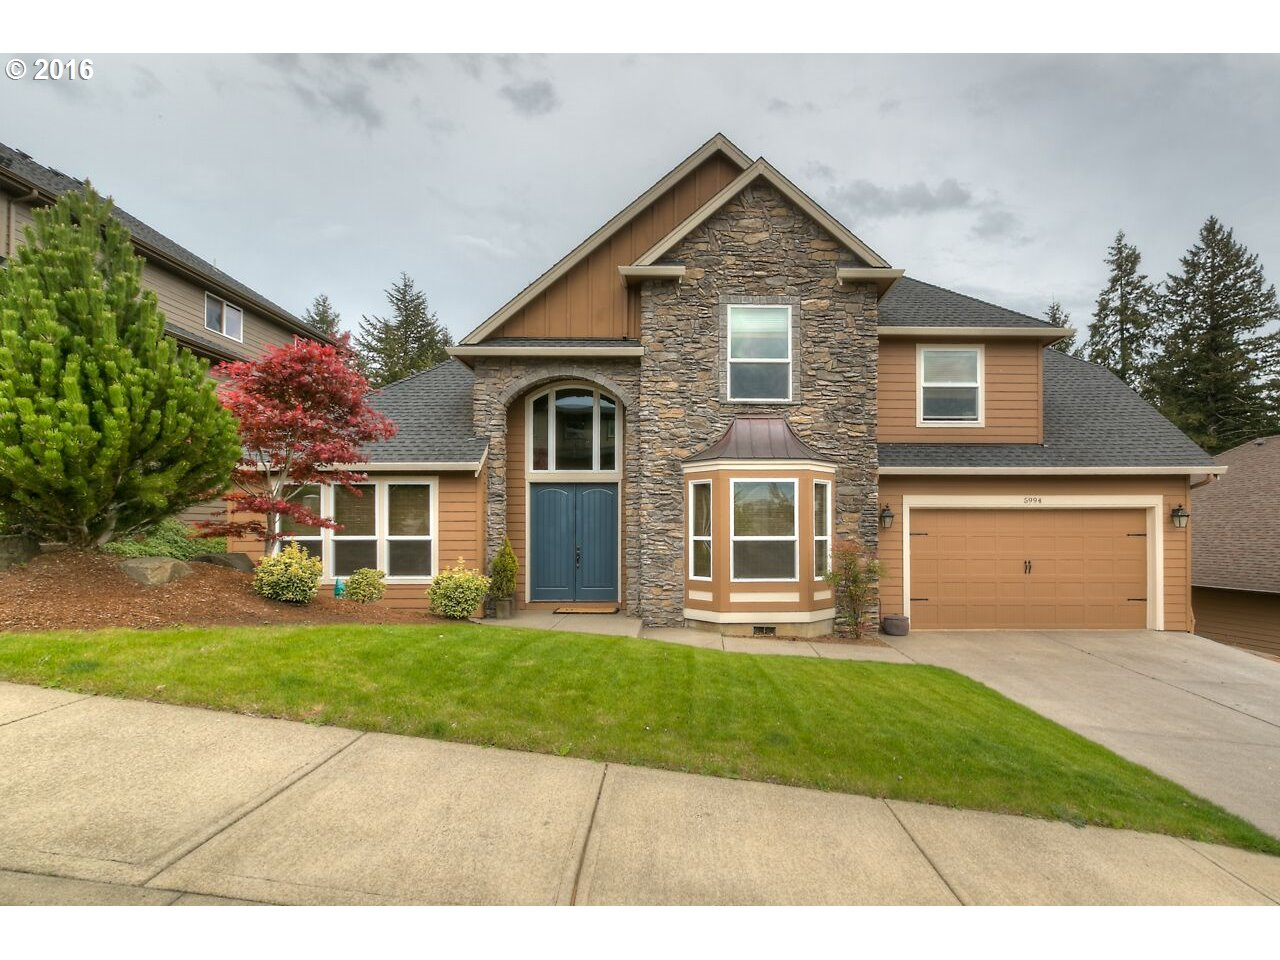 5994 Pikes Pass St, Salem, OR